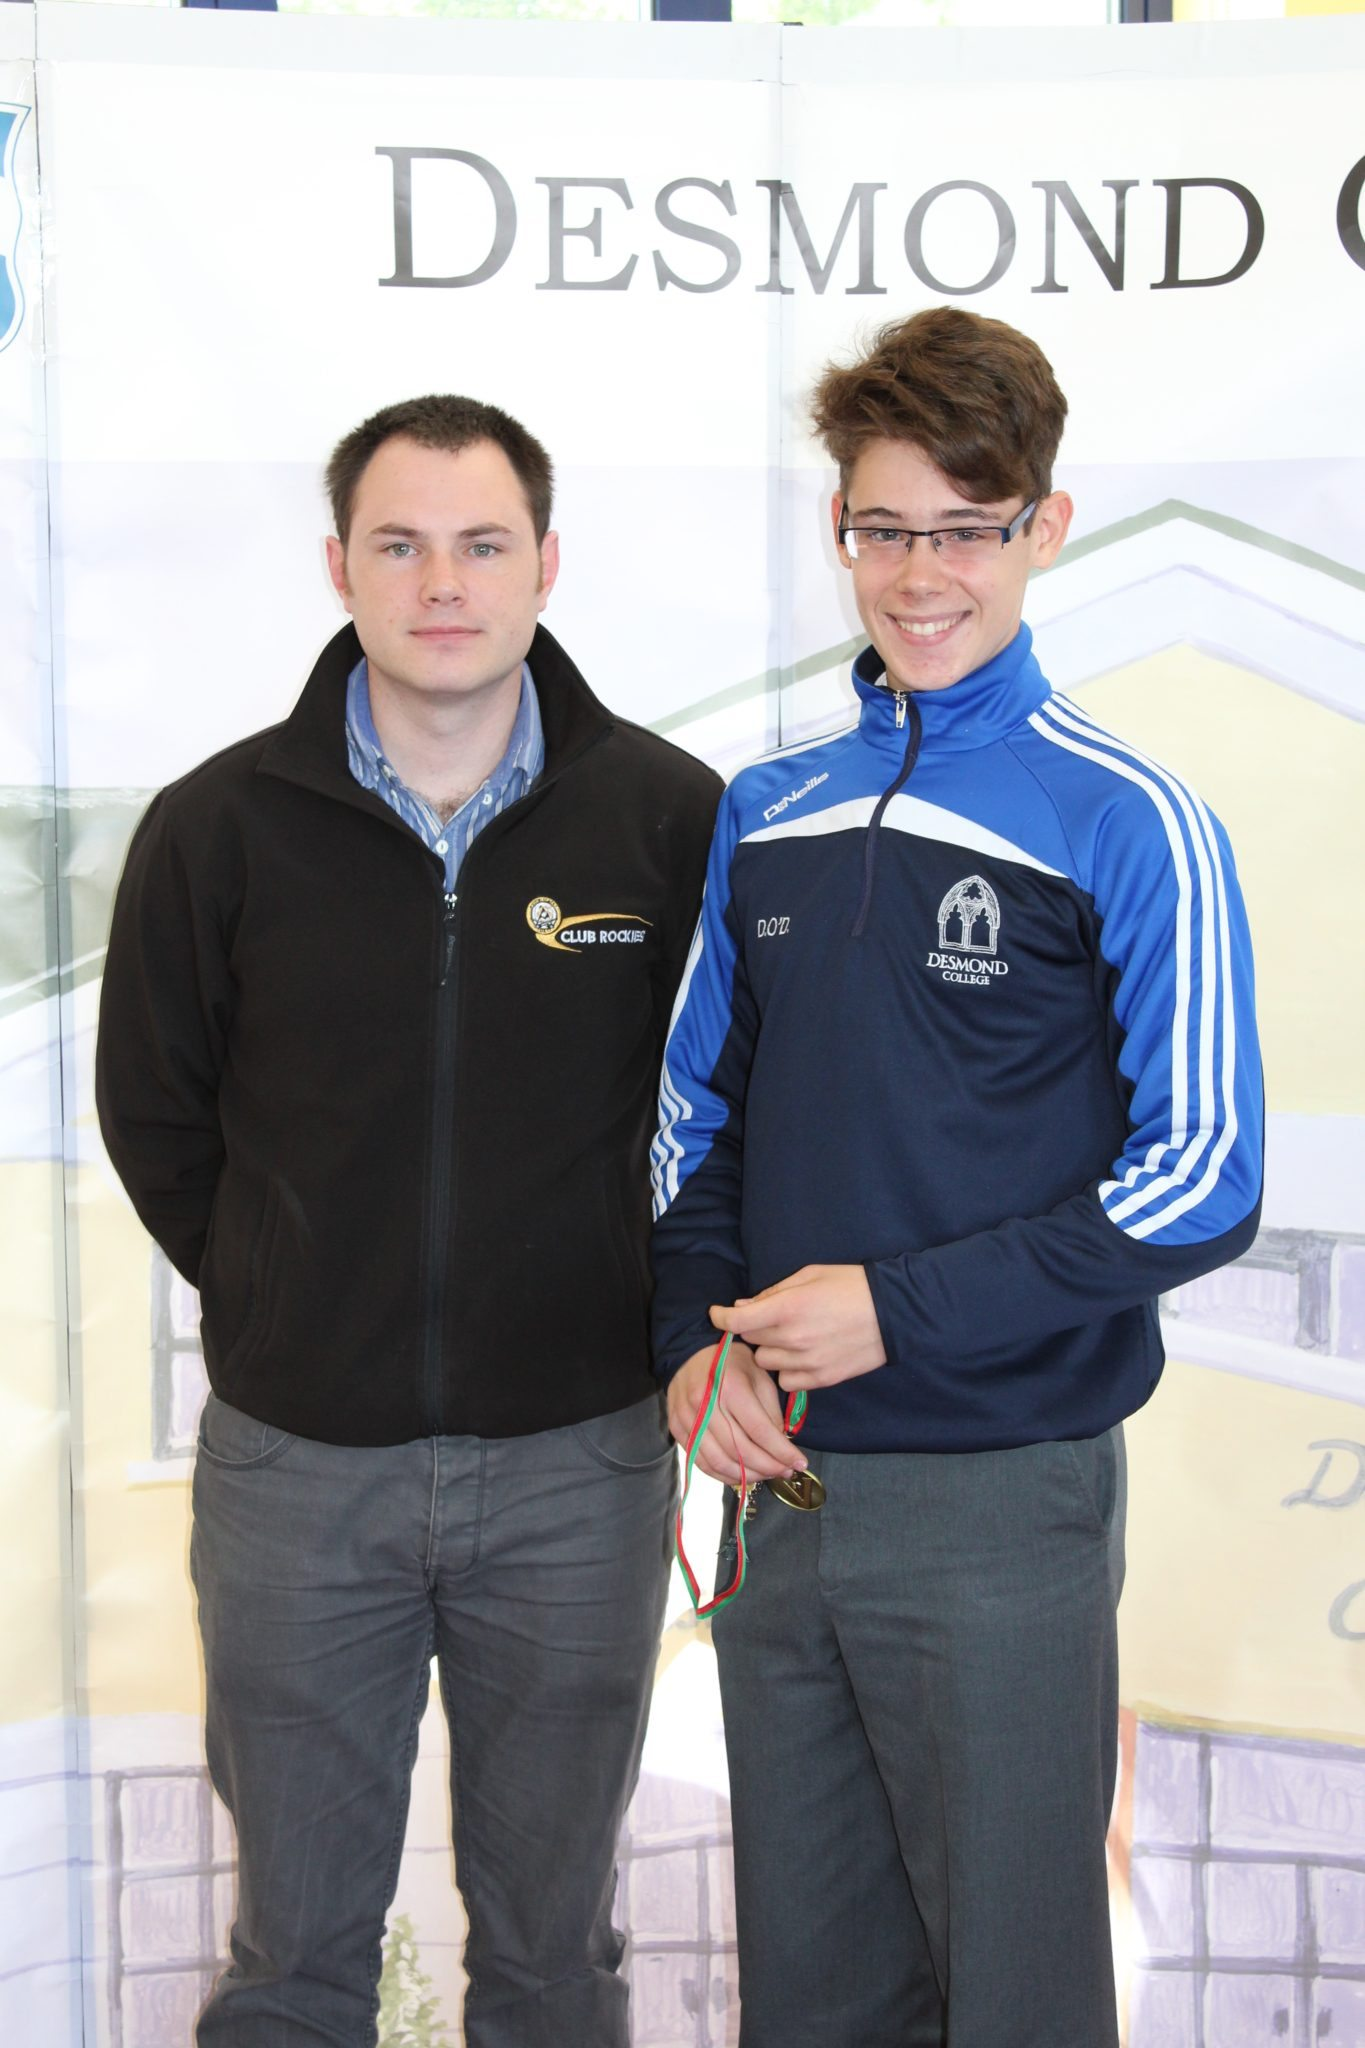 Desmond College Student Awards: May 2015: SPORTS AWARDS 2nd year : Mr King with David O'Donovan